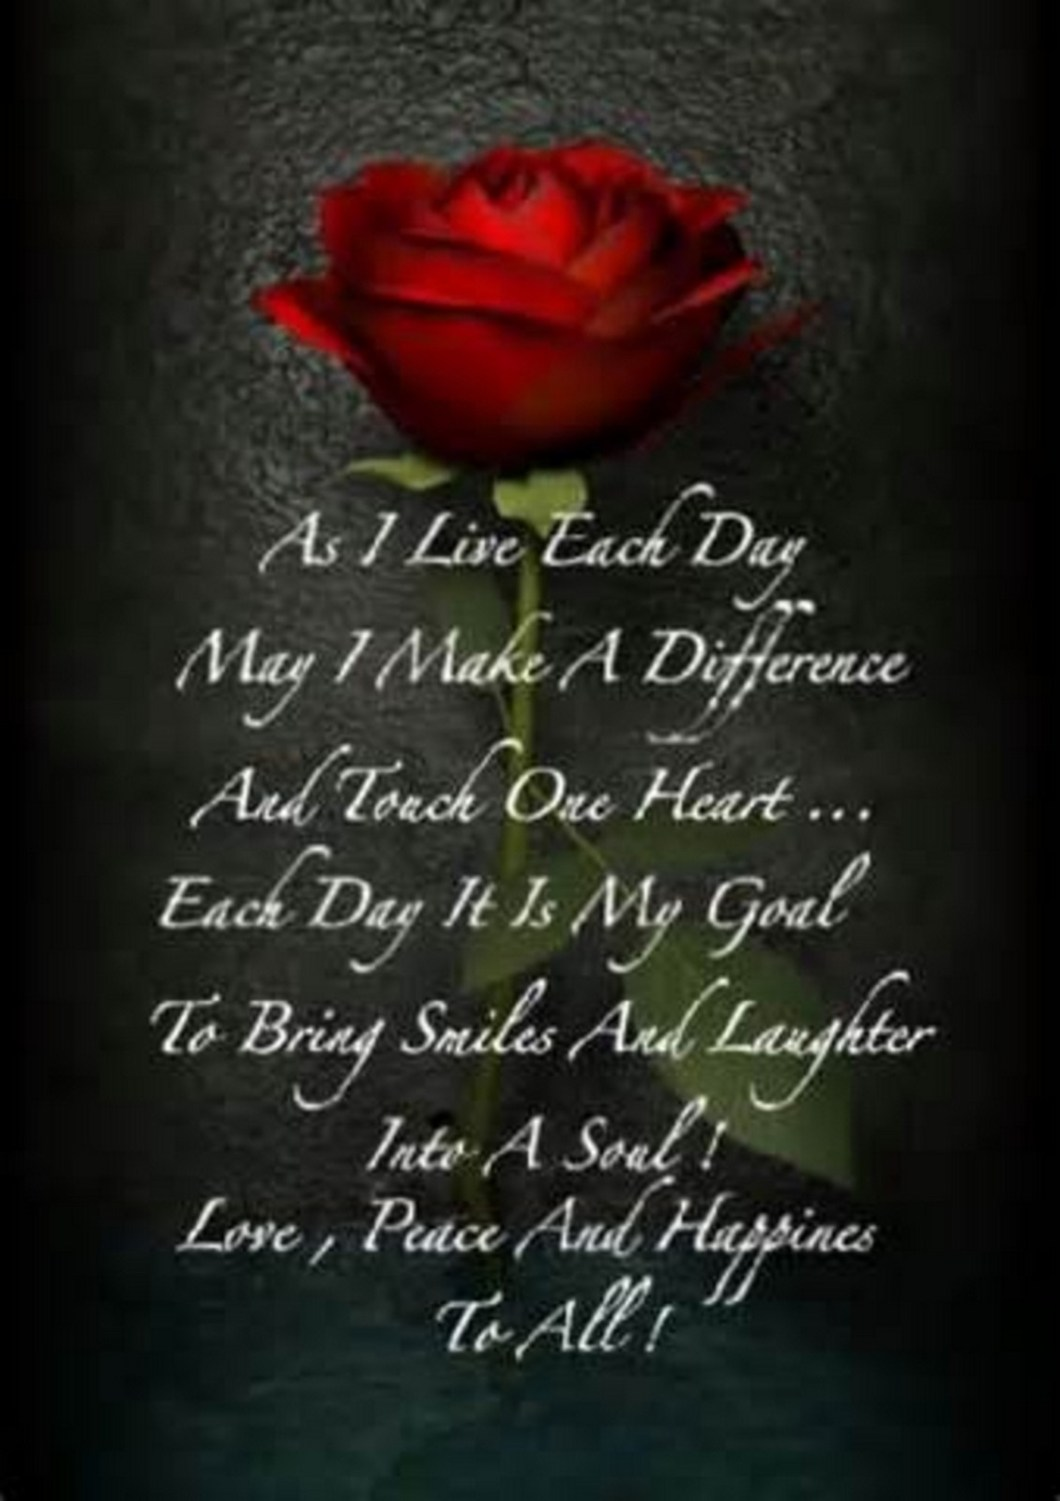 """55 Romantic Quotes - """"As I live each day, may I make a difference and touch one heart... Each day it is my goal to bring smiles and laughter into a soul! Love, peace and happiness to all!"""""""